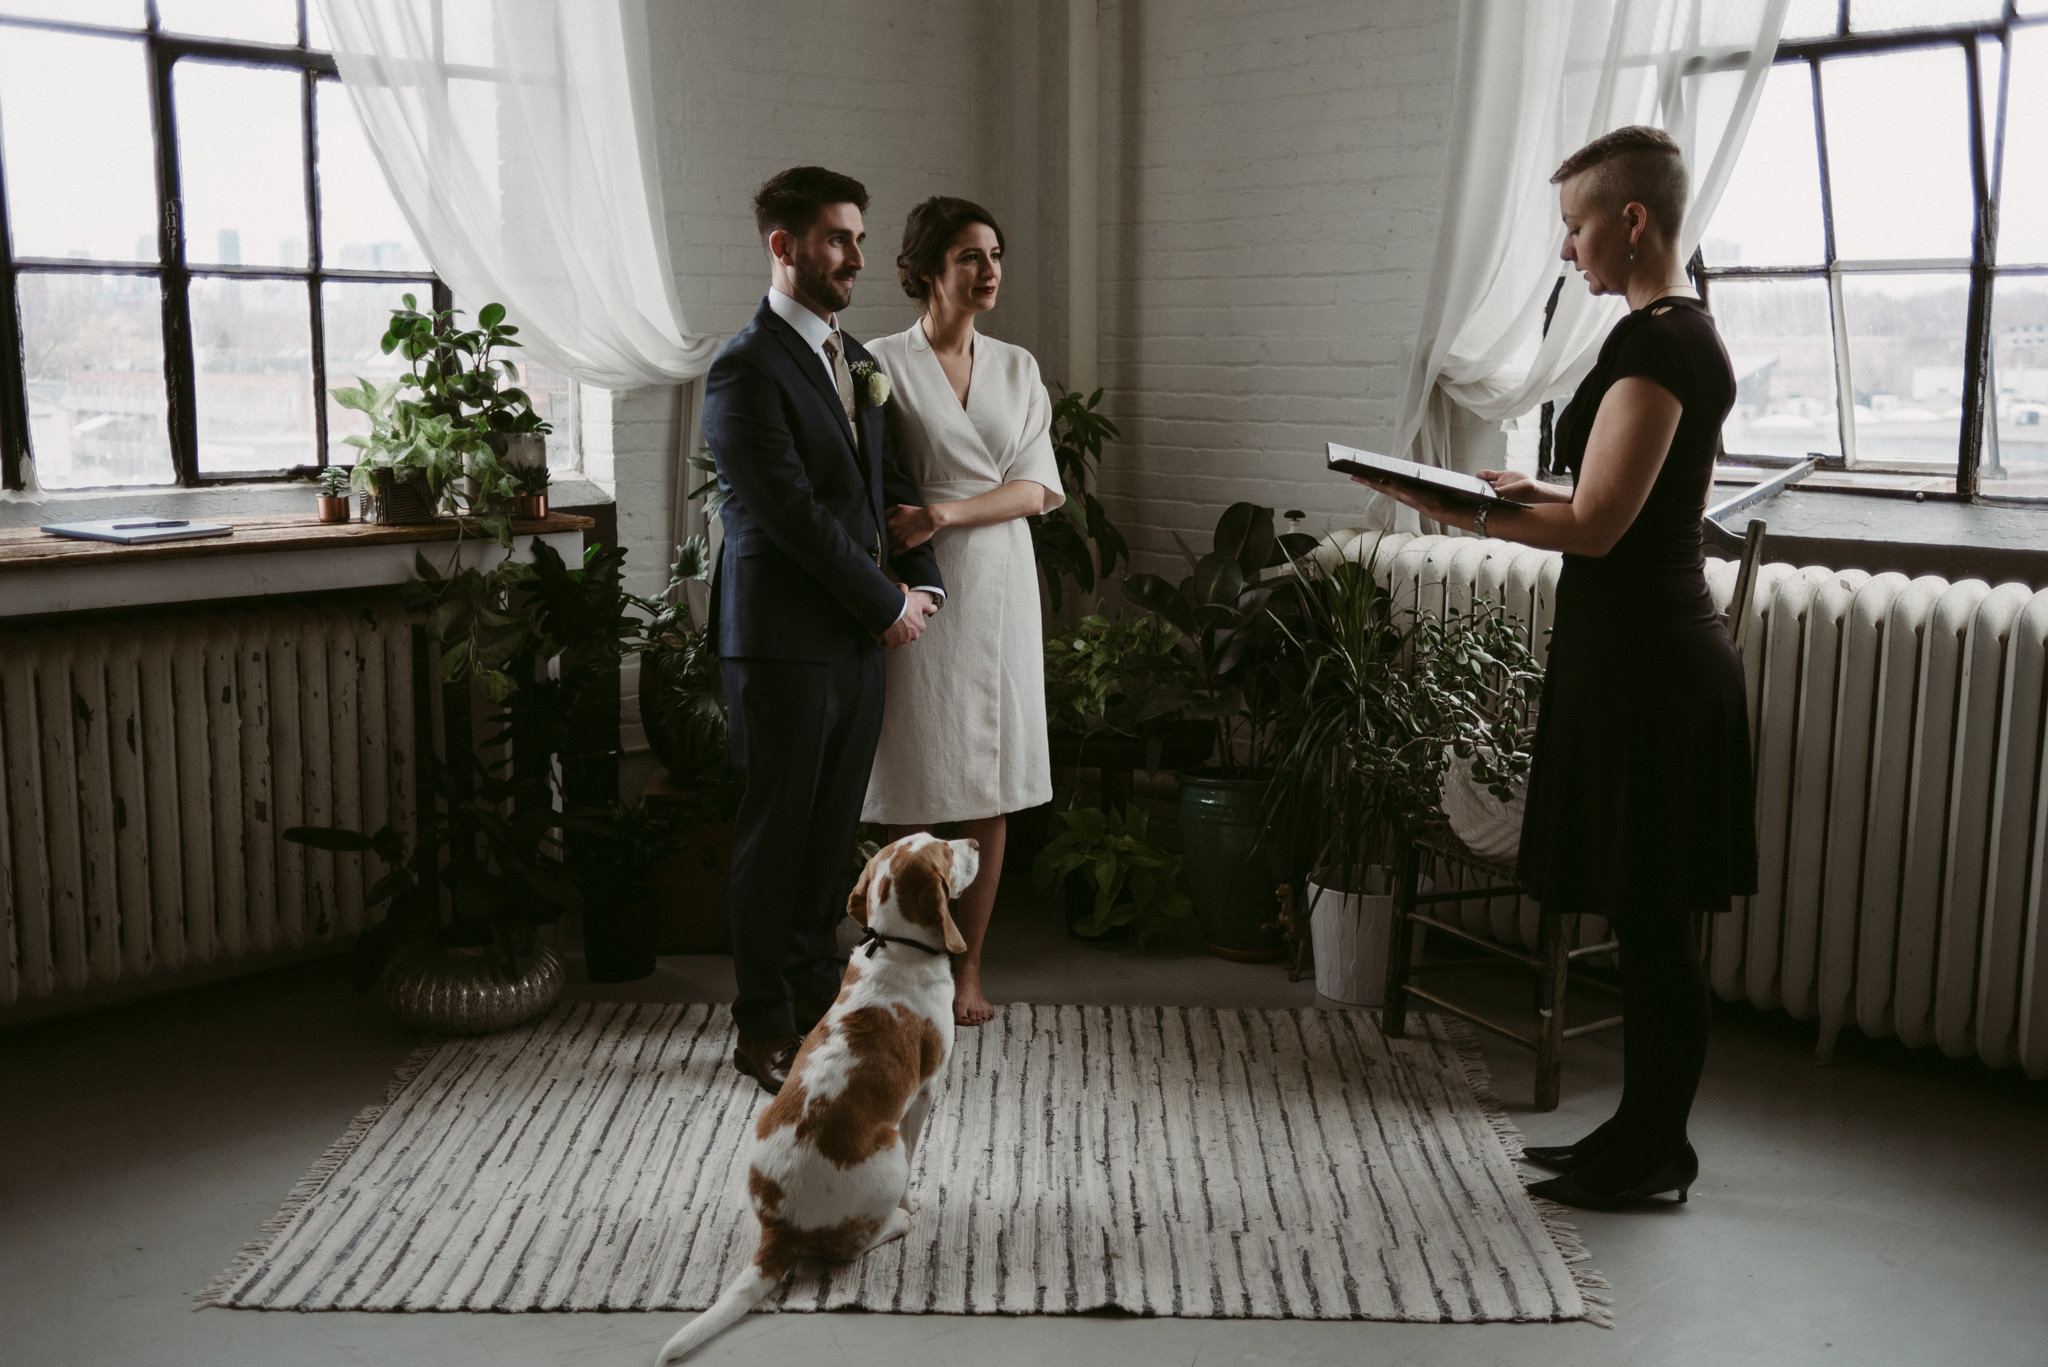 Dog watching during wedding ceremony in trendy Toronto loft